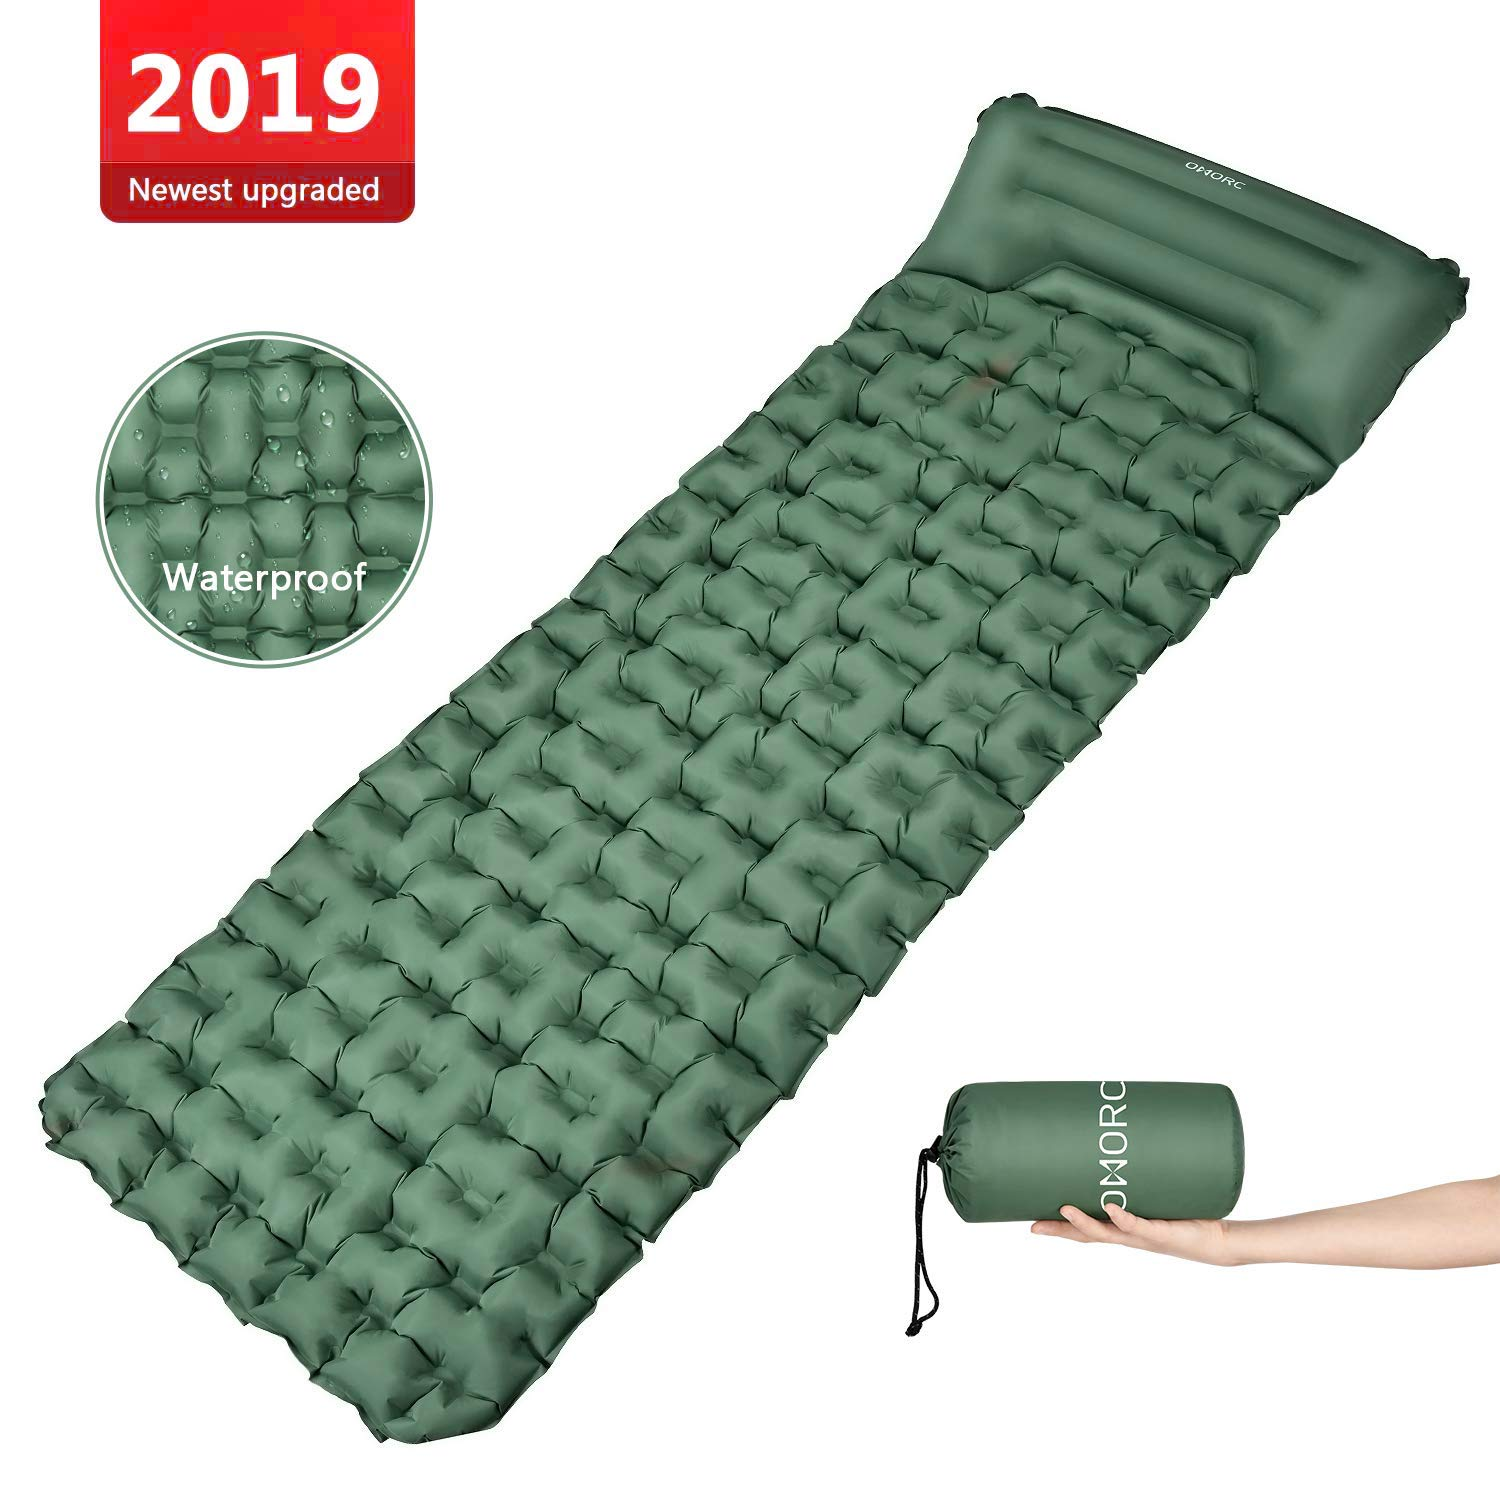 OMORC Camping Sleeping Pad -Mat (Large), Lightweight and Compact ,Camp Sleep Pad , Perfect Sleeping Pads for Backpacking, Traveling and Hiking Air Mattress ,With adjustable built-in pillow (Green) by OMORC